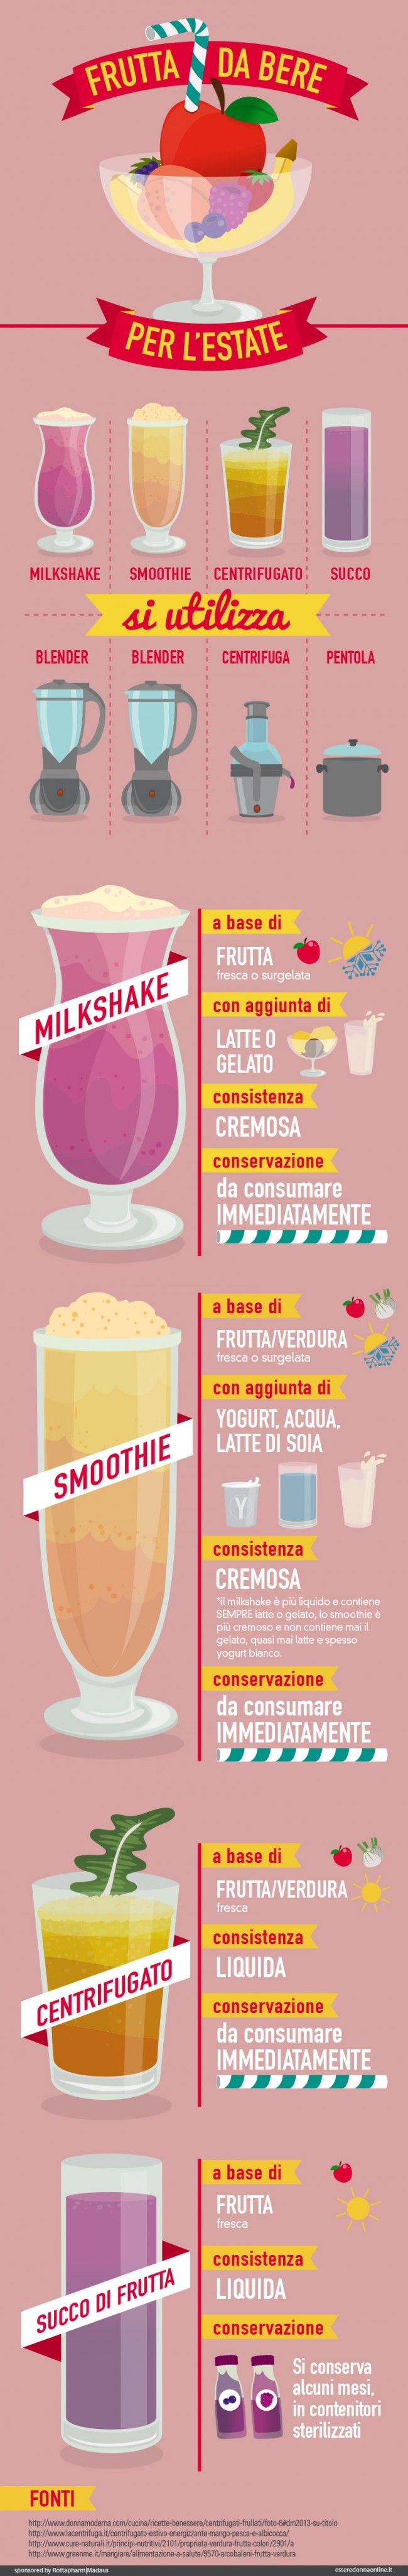 infographic: Frutta da bere per l'estate-Fruit drink for the summer for Esseredonnaonline.com by Kleland studio of Alice Kle Borghi